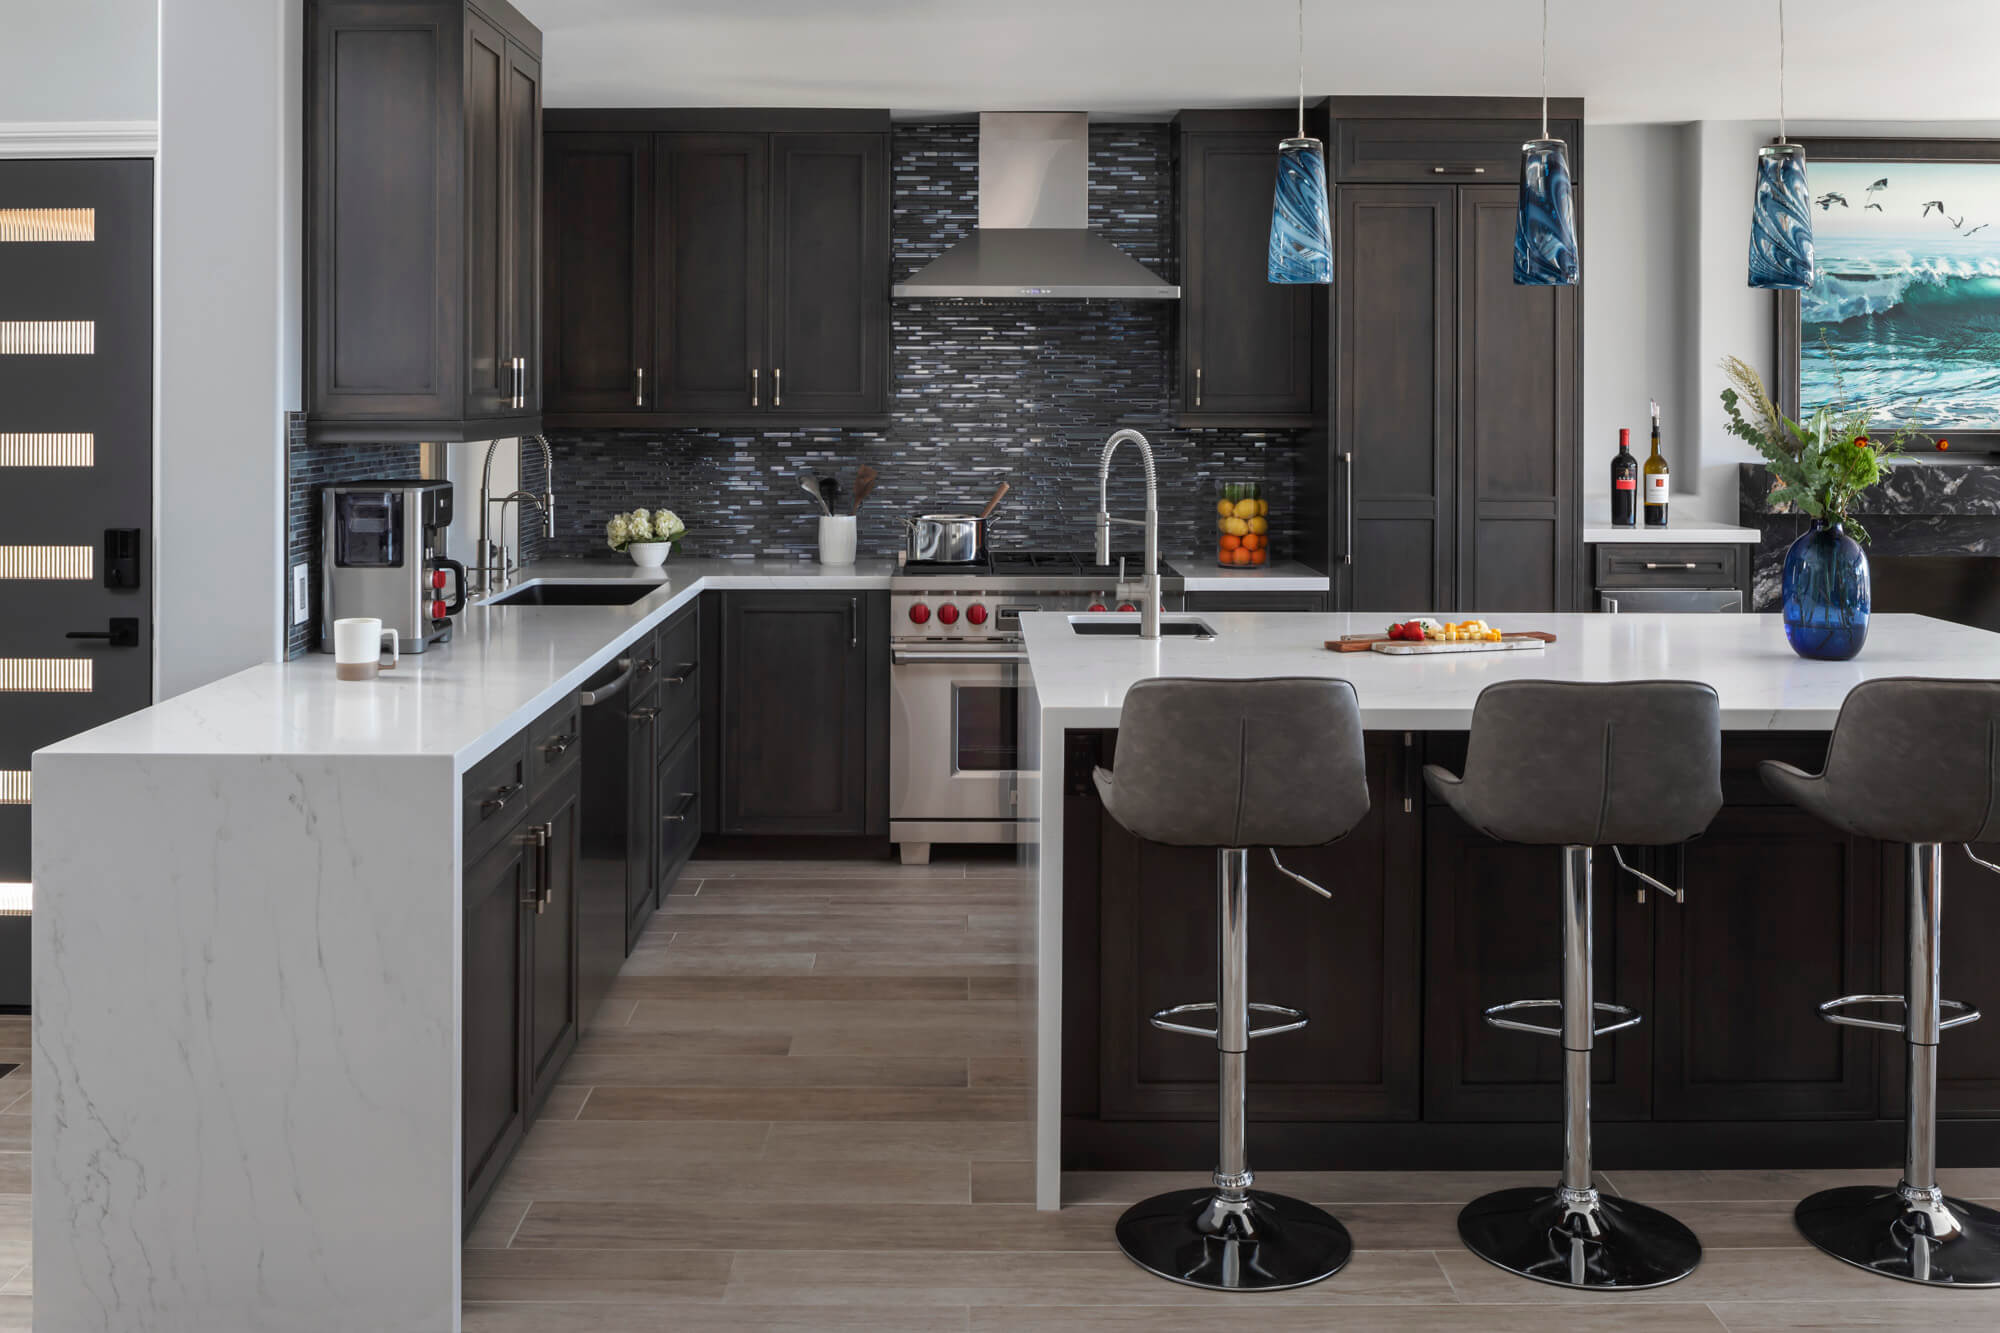 Plumbing-relocation-drives-up-remodeling-costs